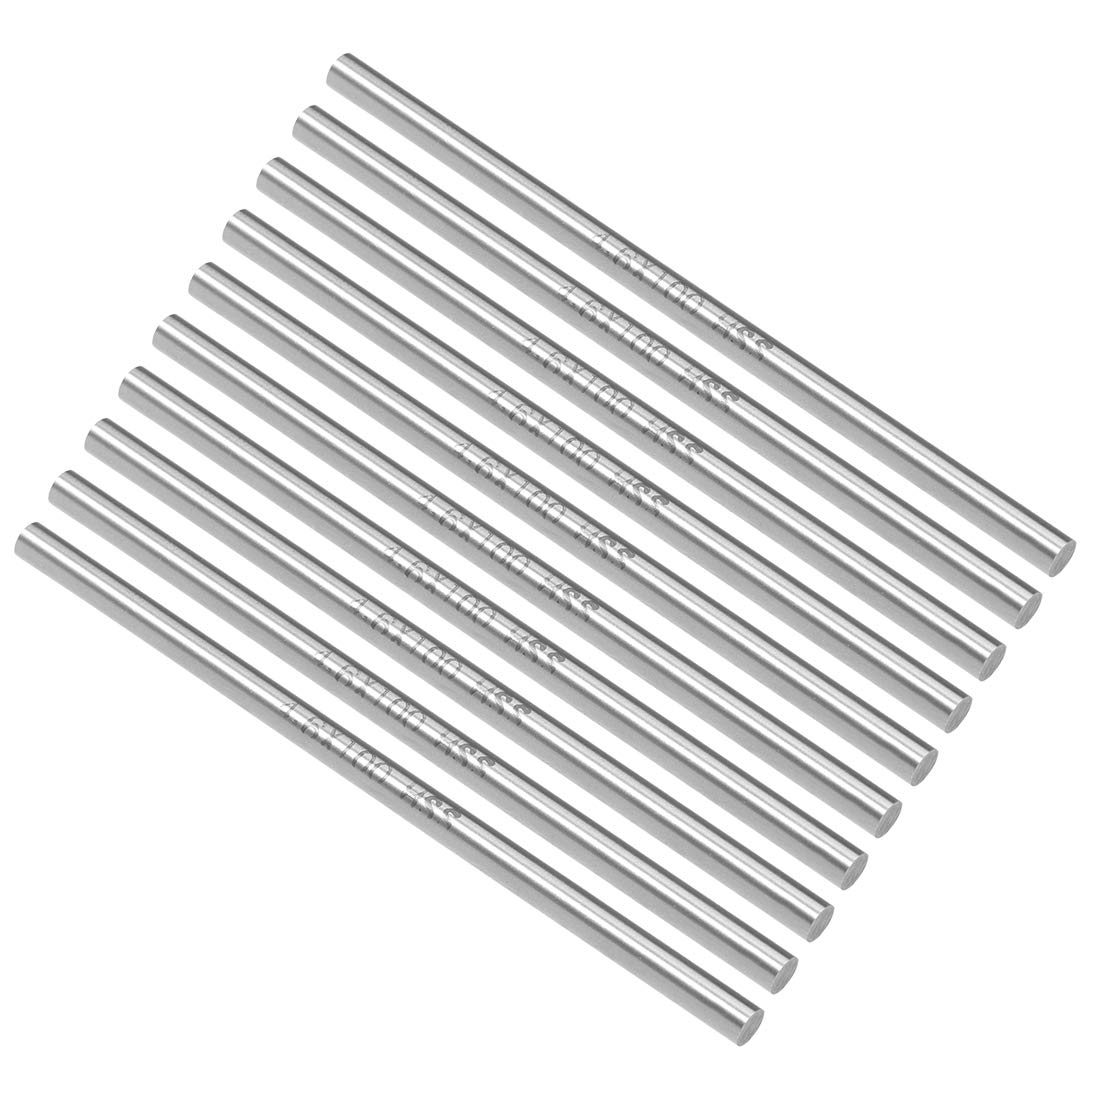 uxcell Round Steel Rod, 4.6mm HSS Lathe Bar Stock Tool 100mm Long, for Shaft Gear Drill Lathes Boring Machine Turning Miniature Axle, Cylindrical Pin DIY Craft Tool, 10pcs